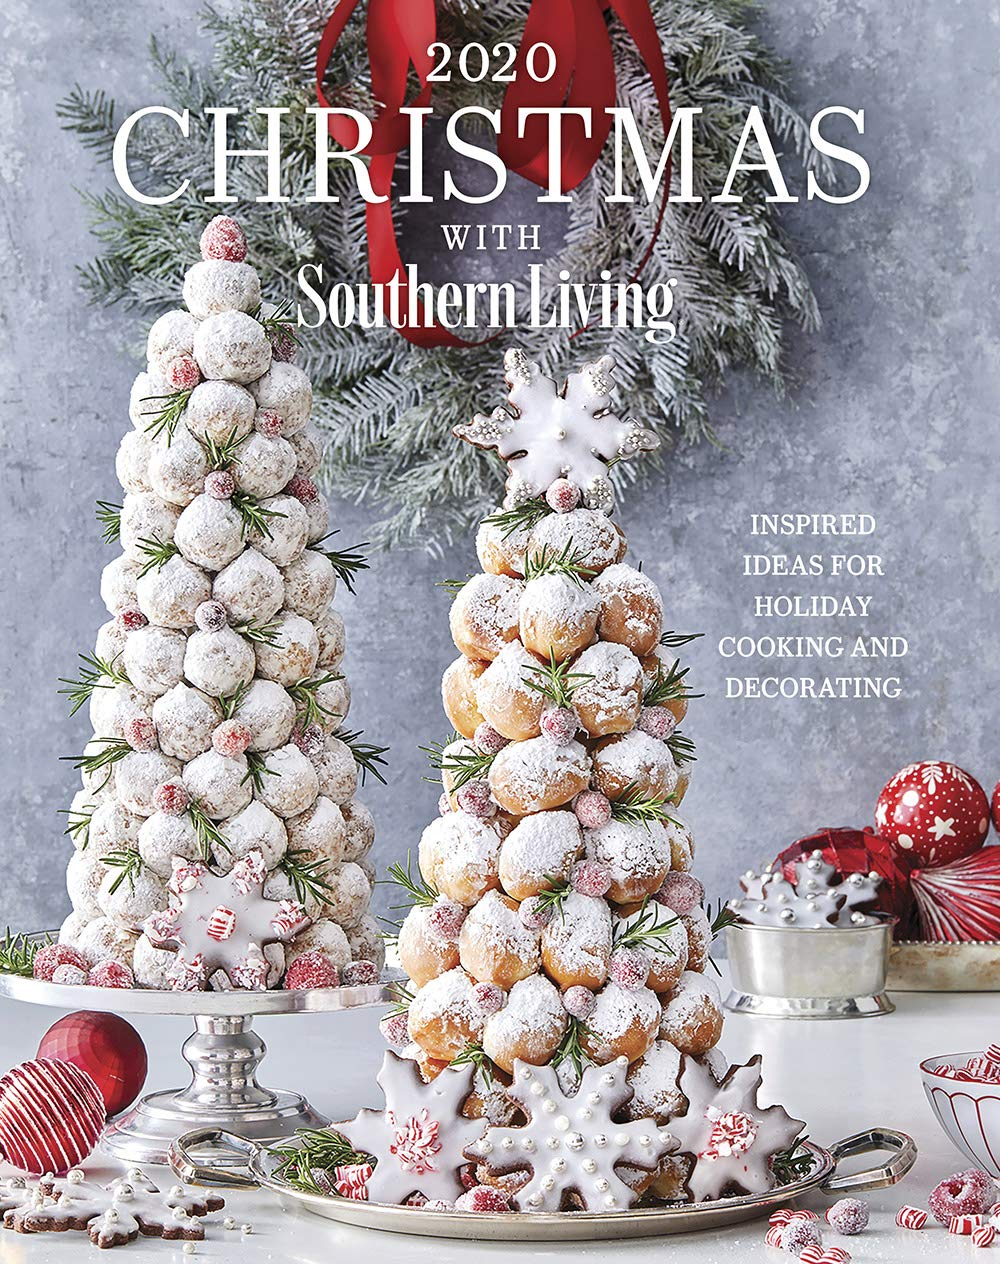 When Was Christmas 2020 2020 Christmas with Southern Living: Inspired Ideas for Holiday